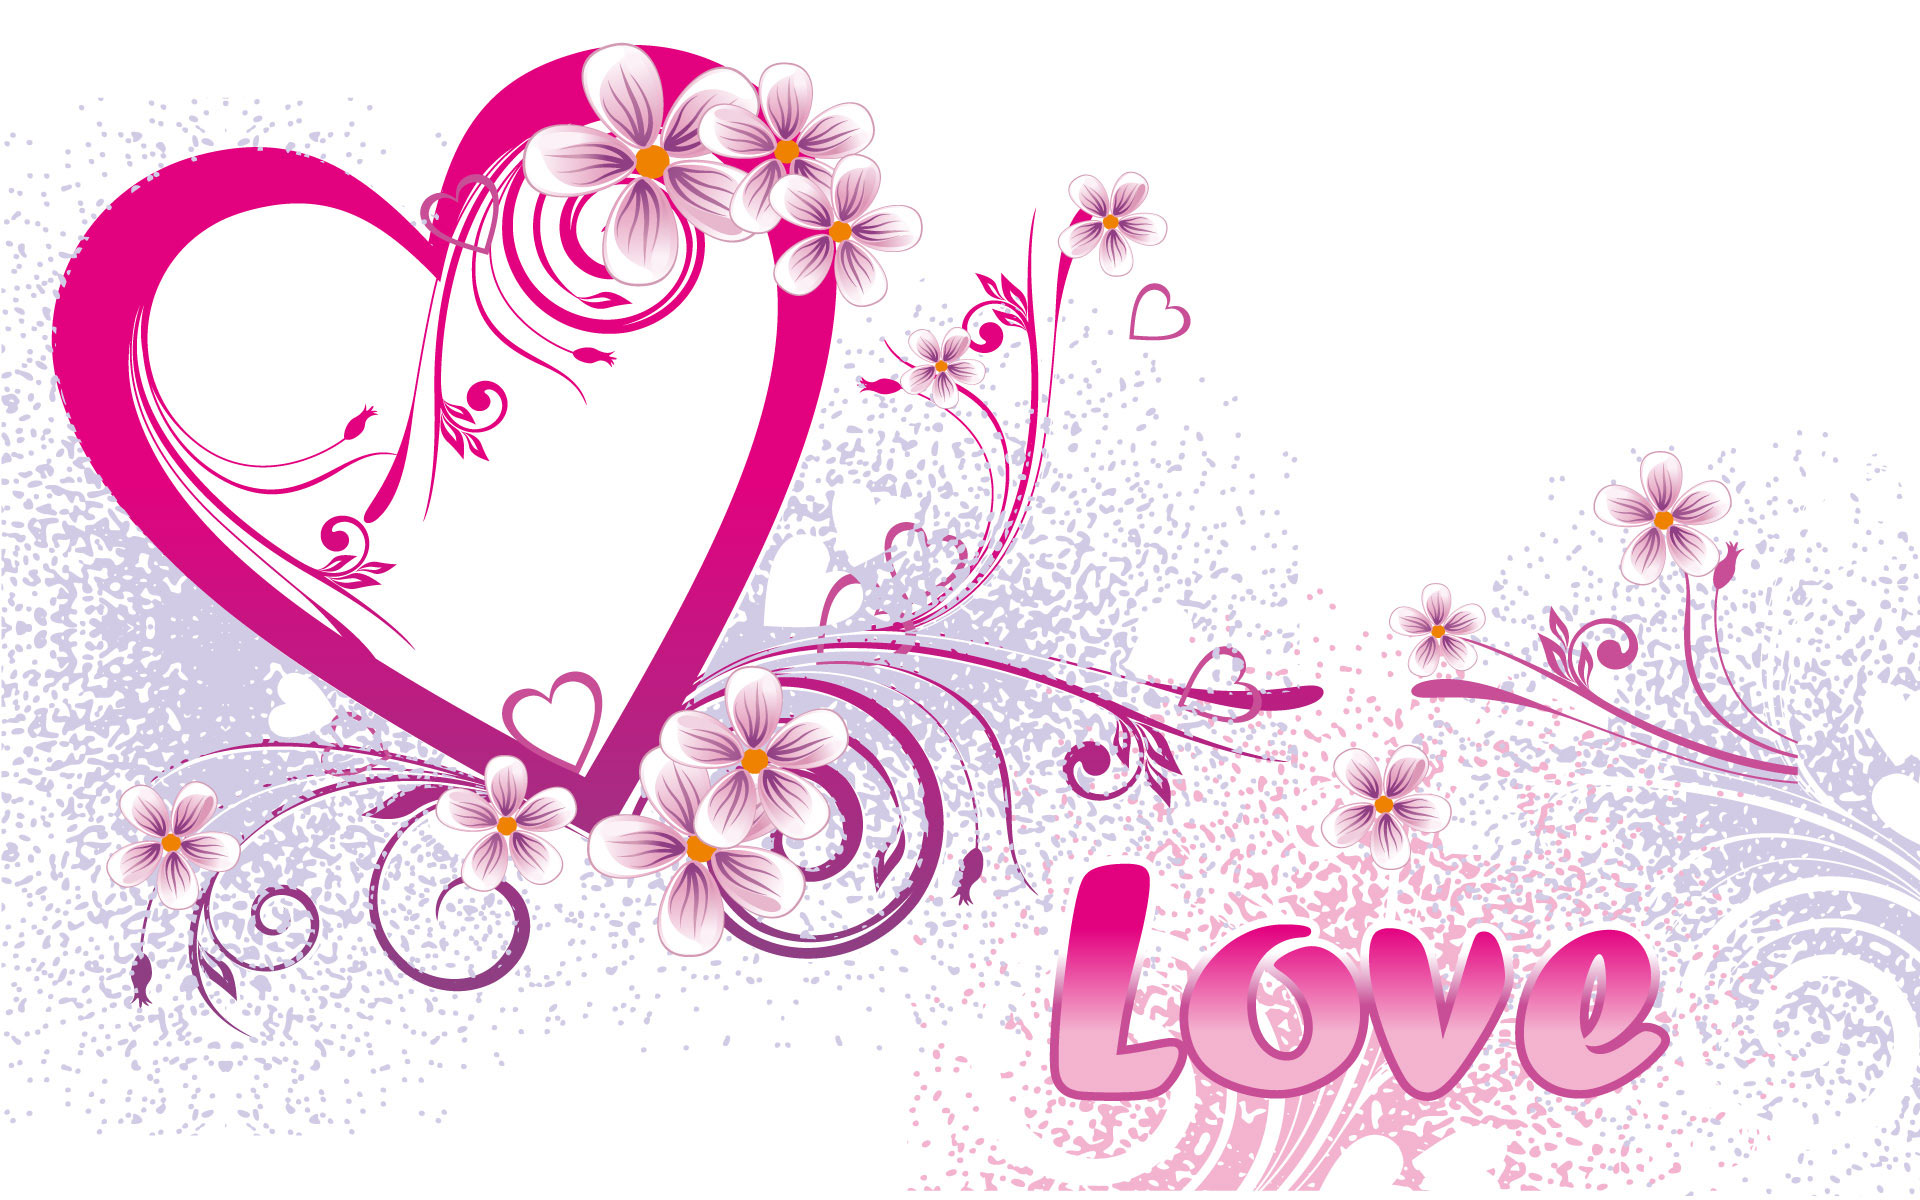 download s love p name wallpaper gallery